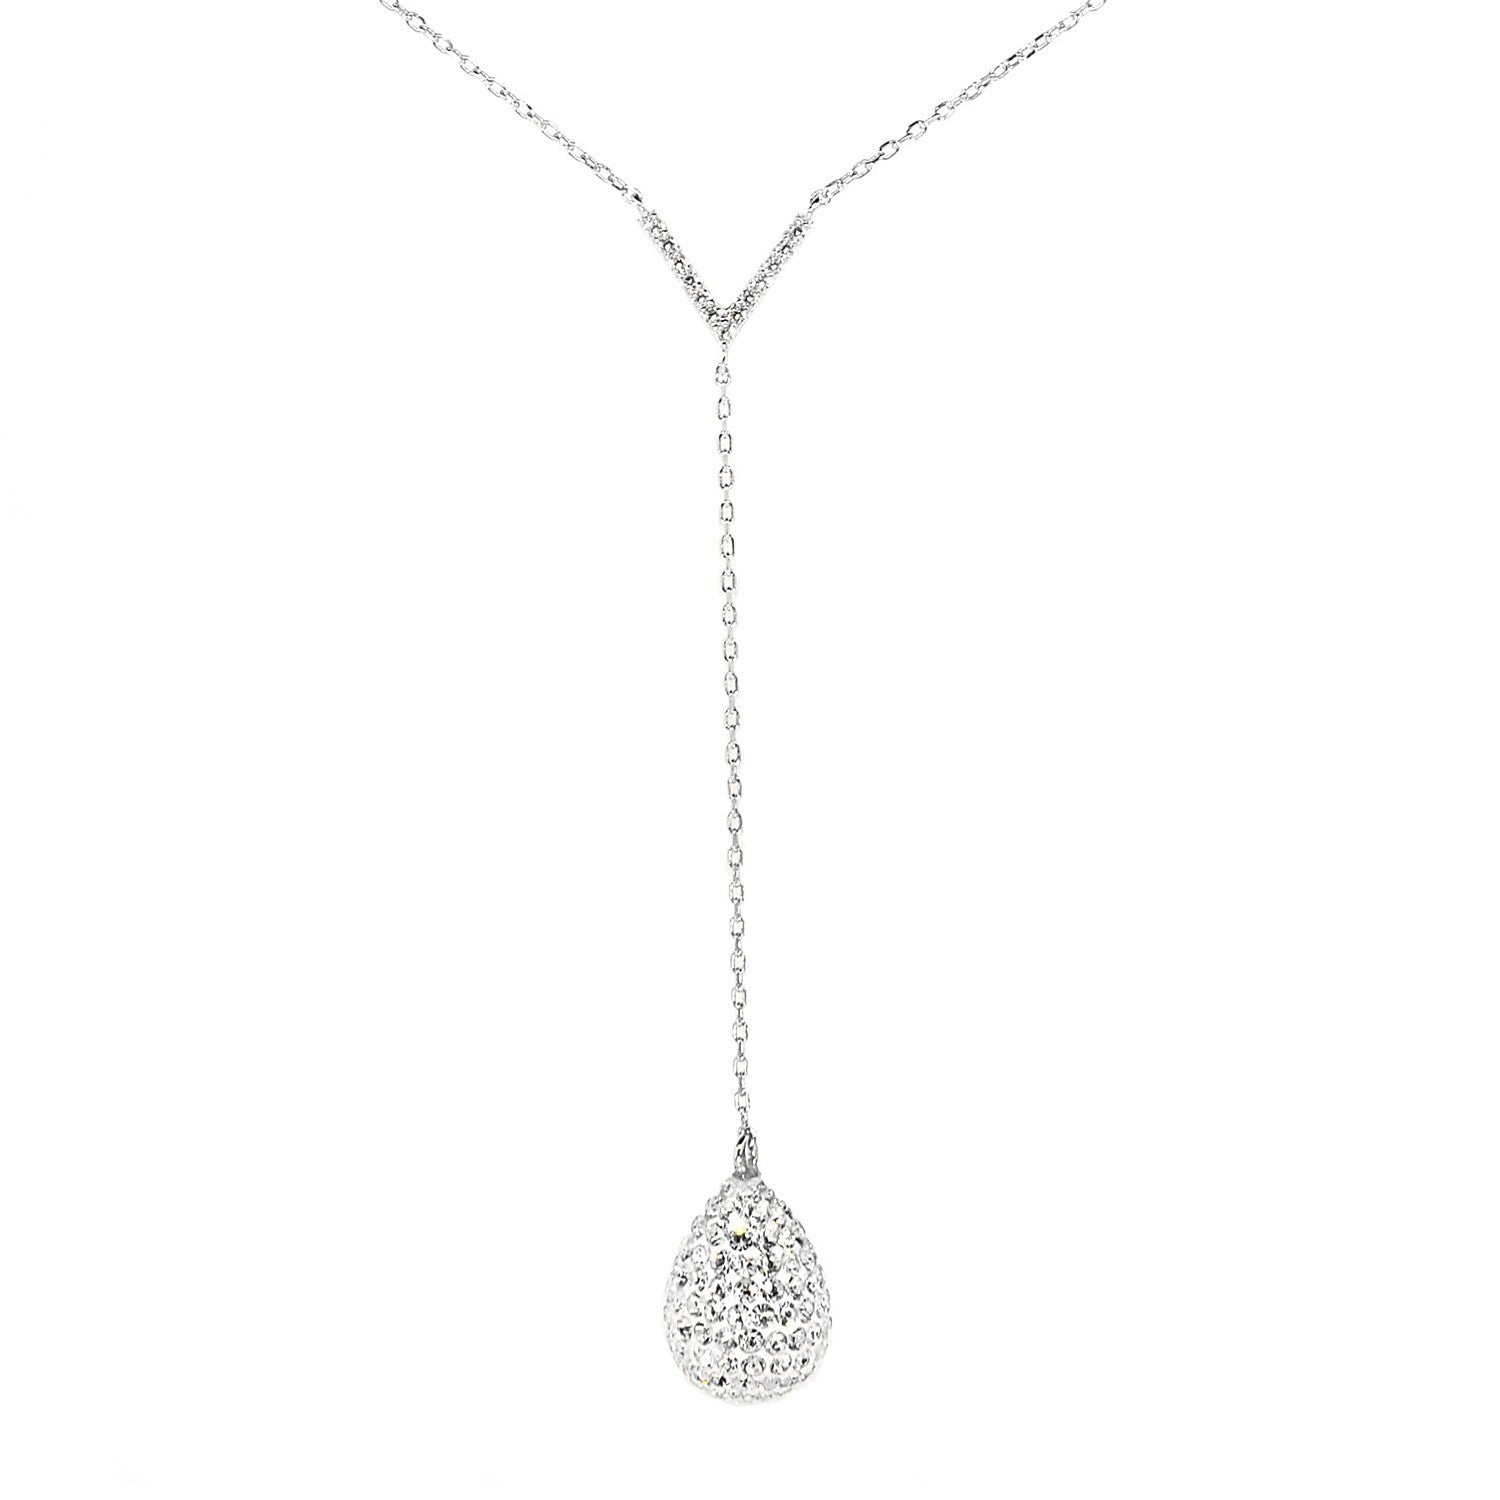 Necklaces ava crystal teardrop sterling silver necklace cate necklacejewelry ava crystal teardrop silver necklace mozeypictures Images